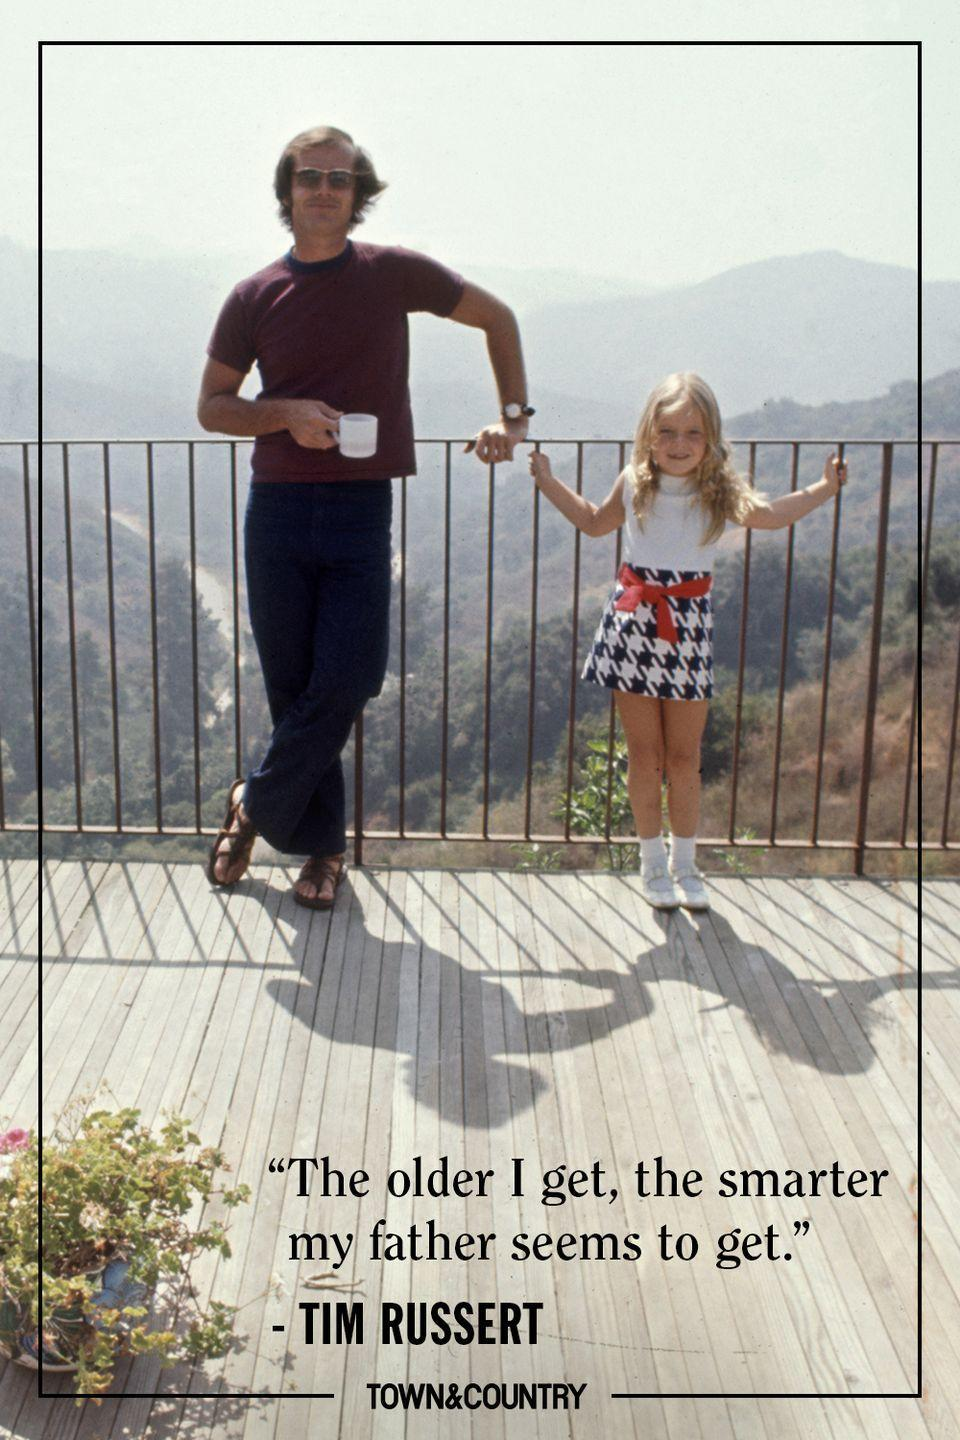 "<p>""The older I get, the smarter my father seems to get.""</p><p>- Tim Russert</p>"